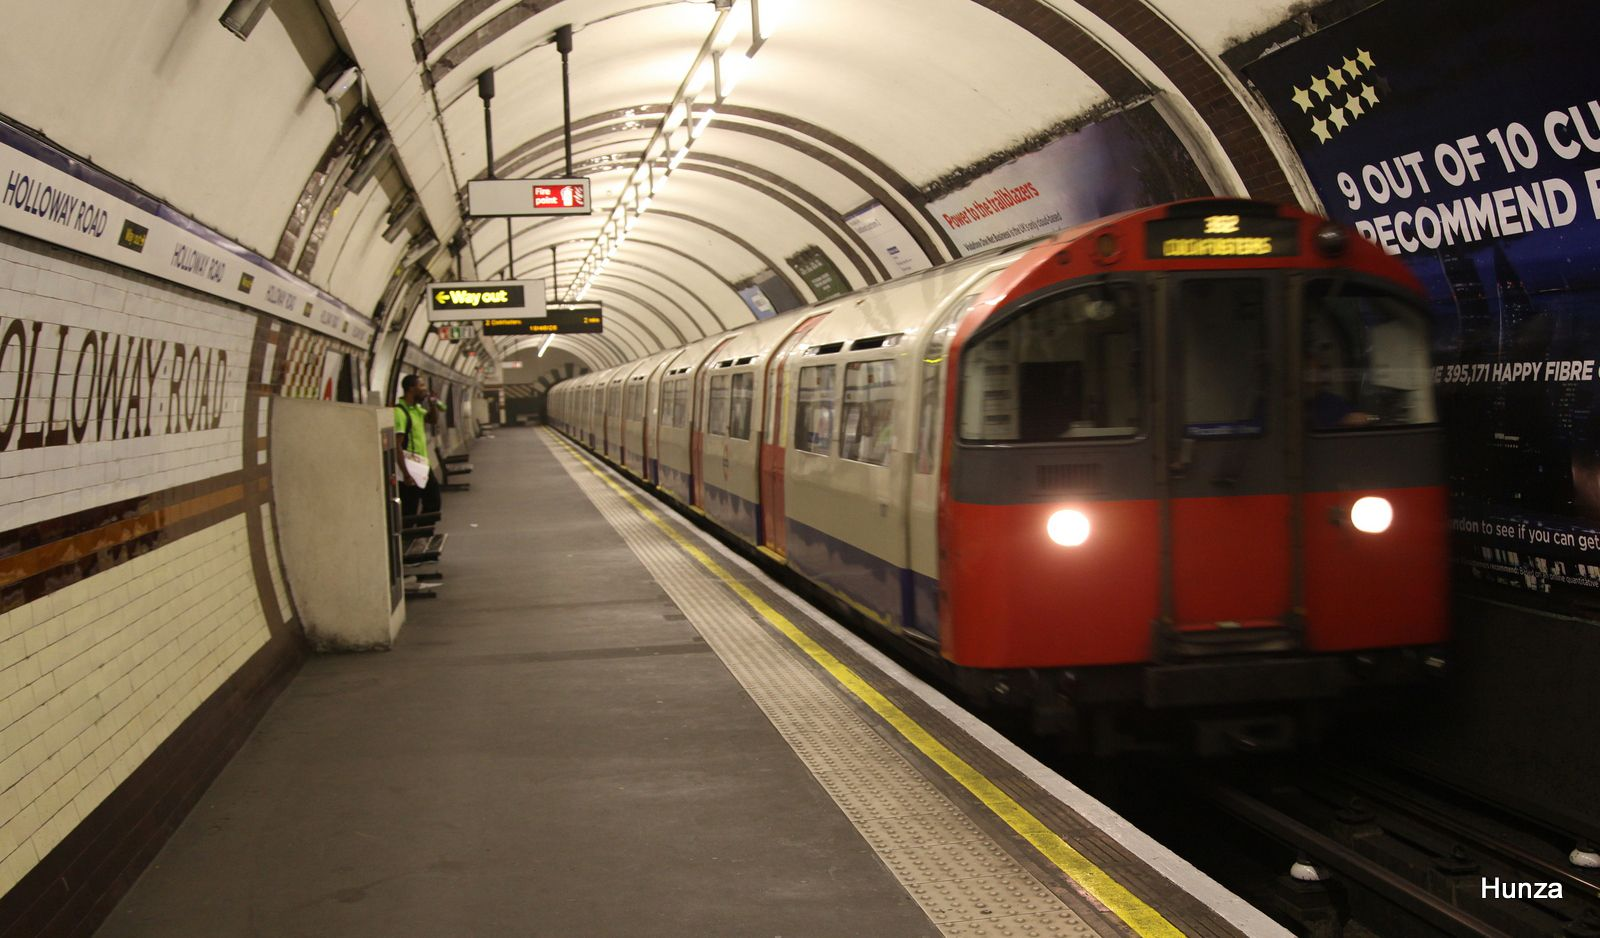 Rame 1973 Stock de la Picadilly Line à Holloway Road station (28 juillet 2014)